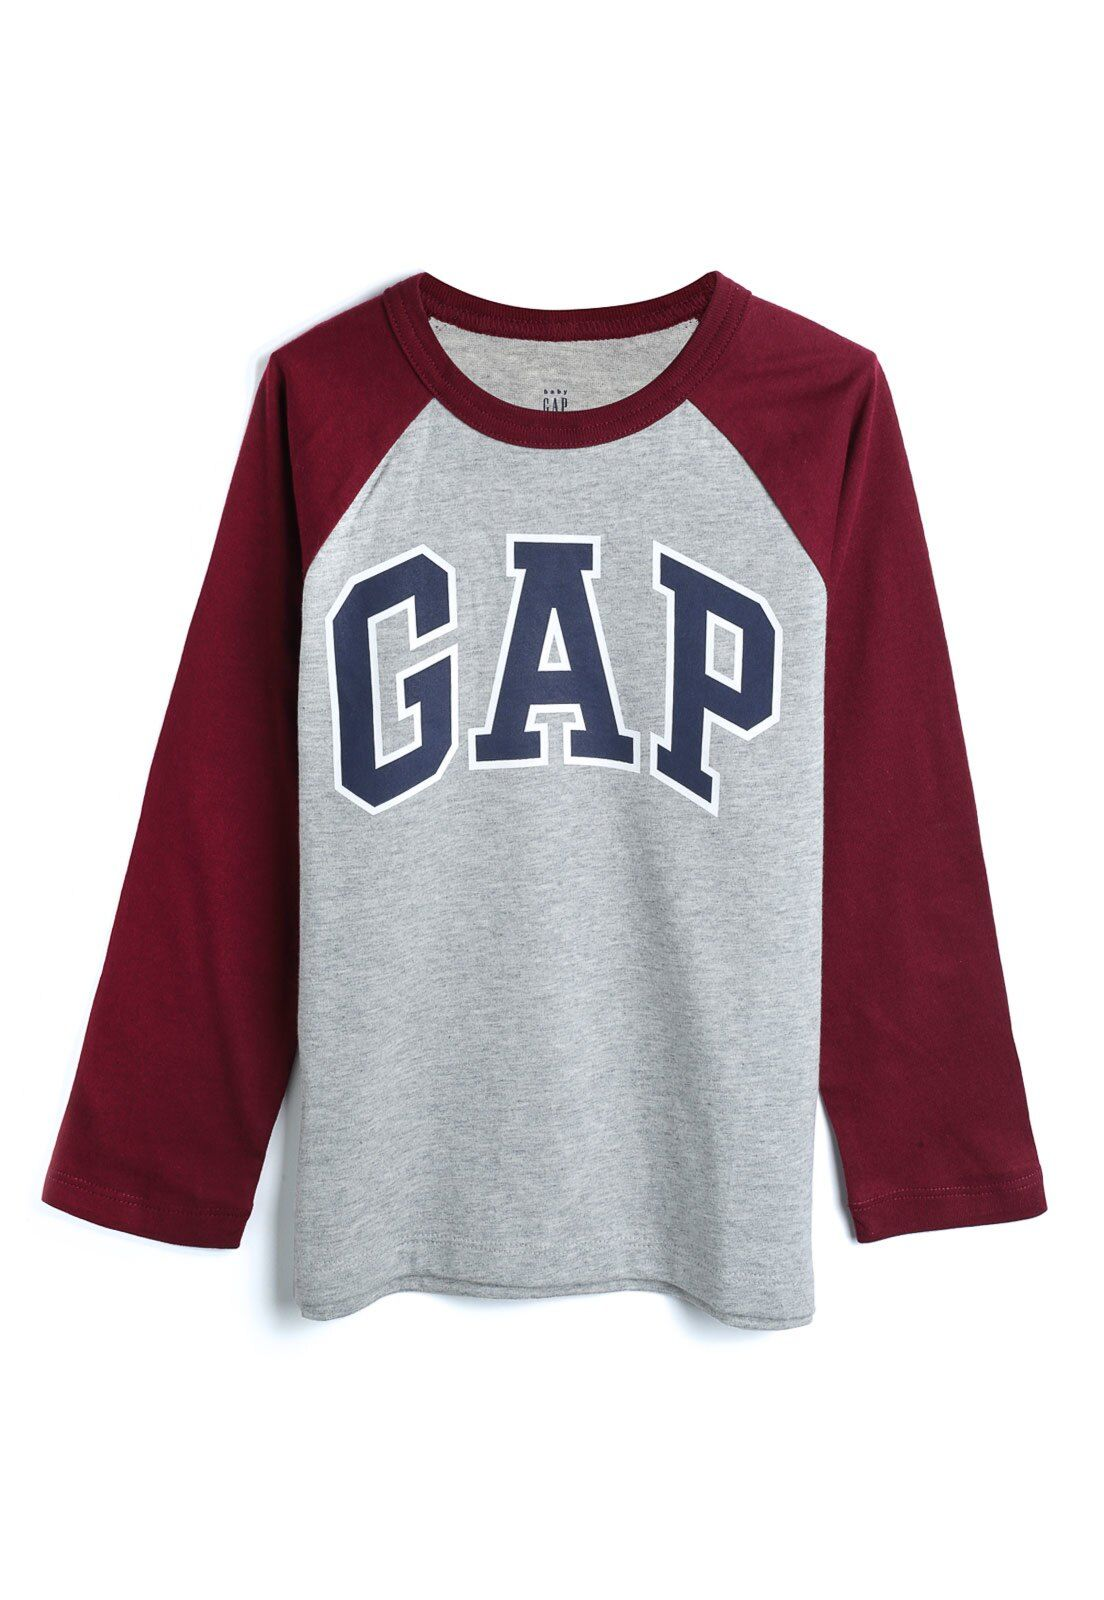 Camiseta GAP Adulto e Infantil